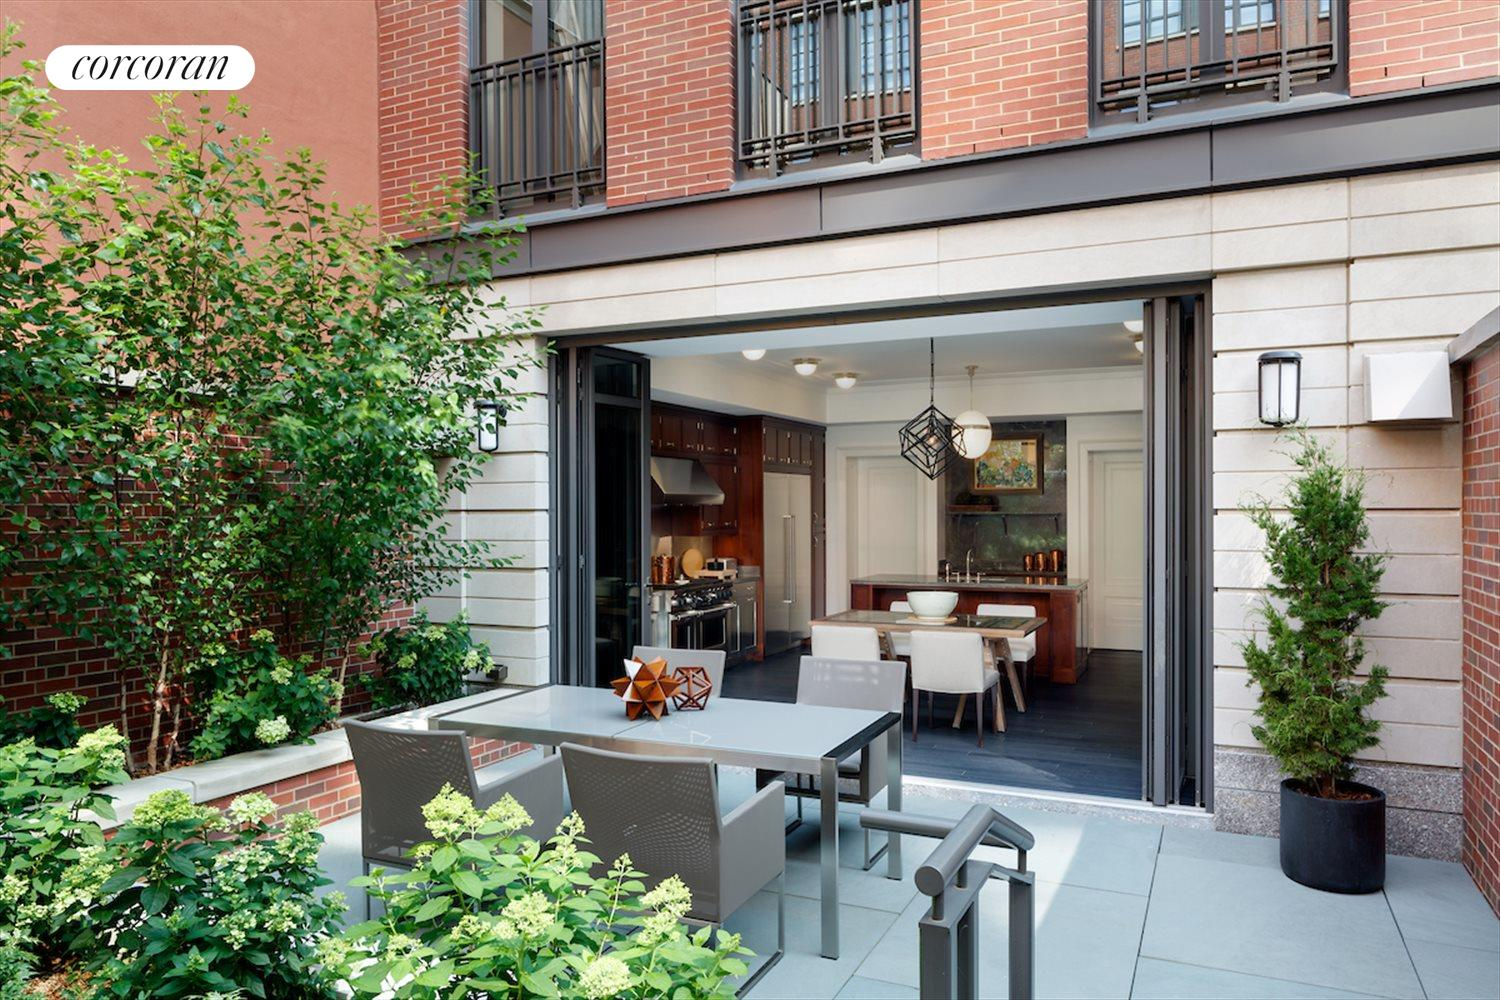 New York City Real Estate | View 141 West 11th Street | 5 Beds, 5 Baths